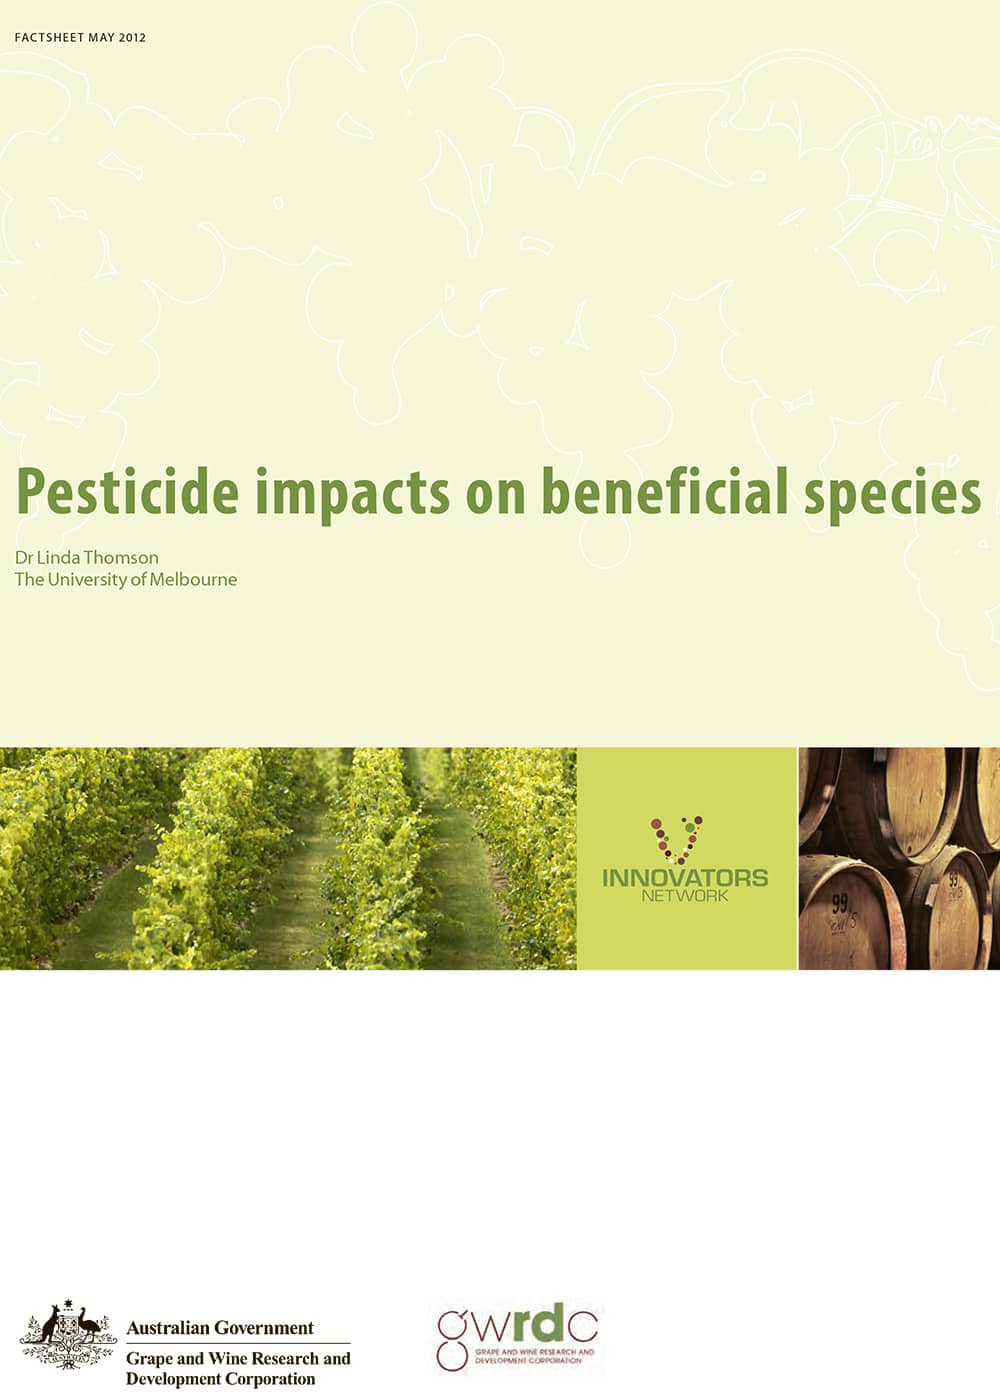 Pesticide impacts on beneficial species